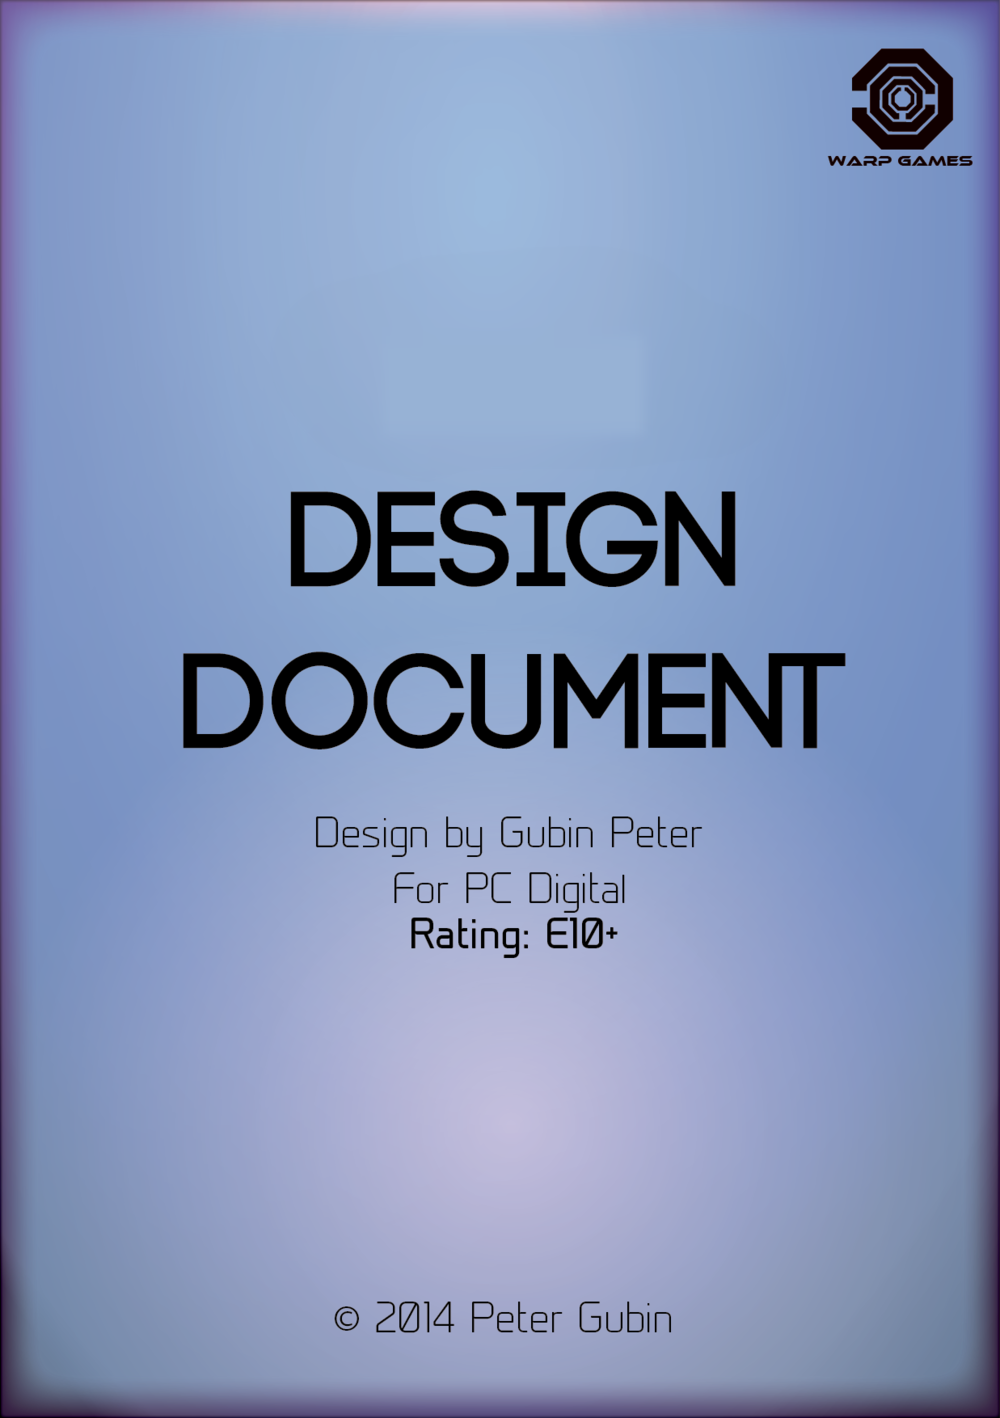 Game design document front page